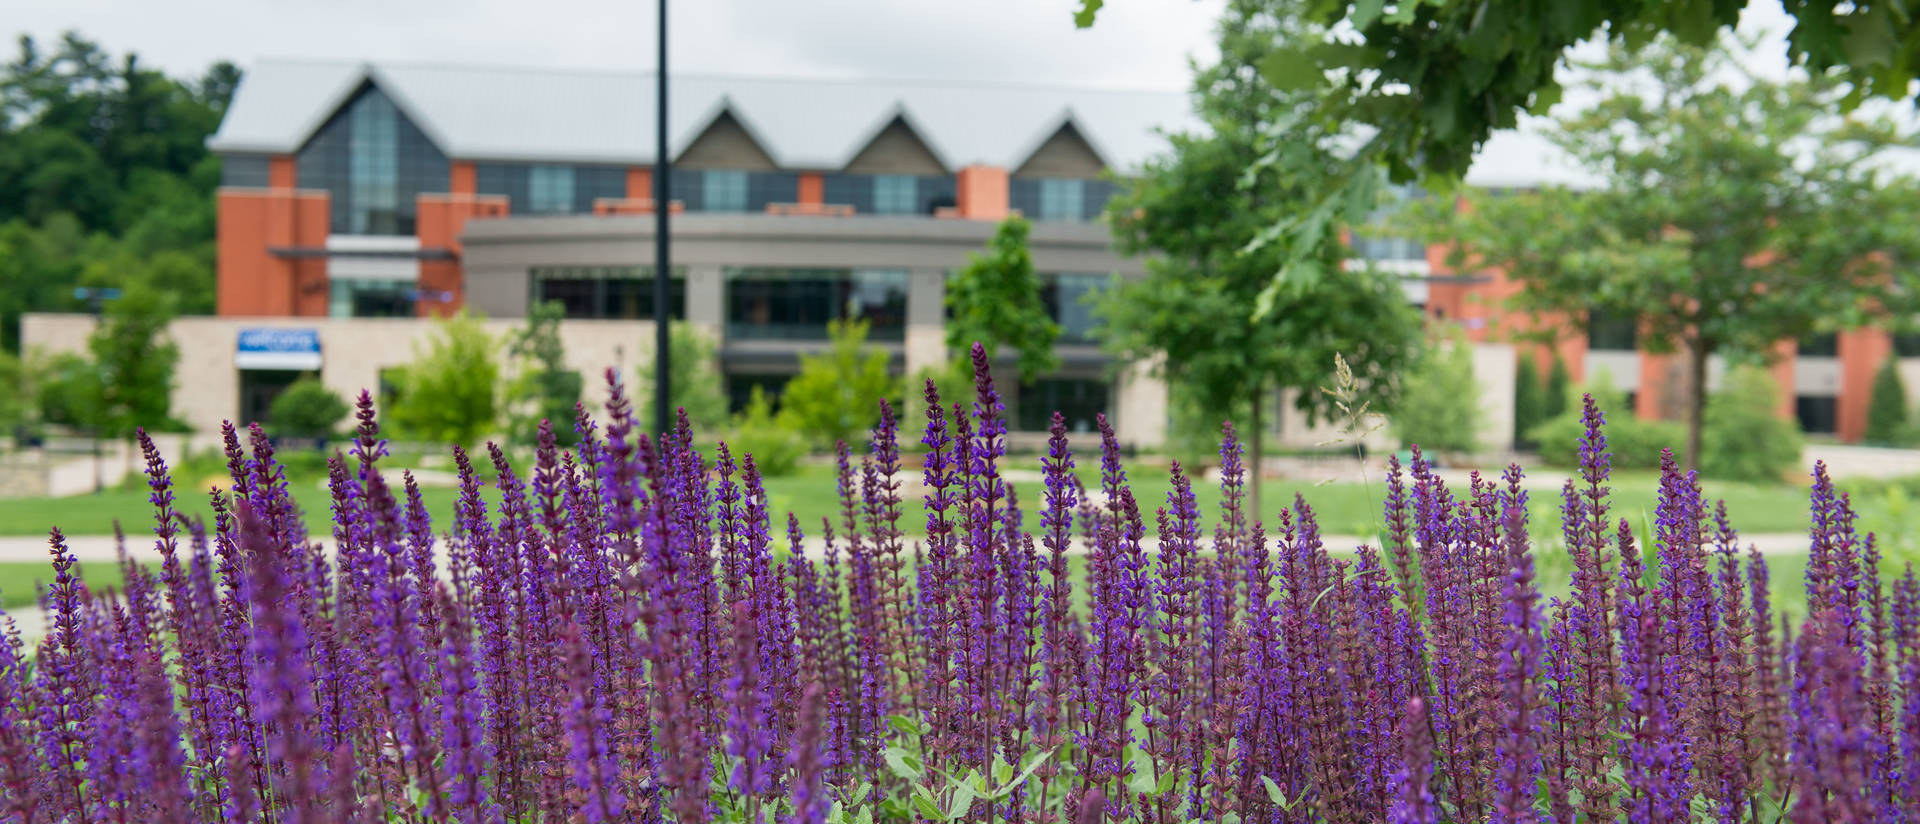 flowers on campus mall with Davies in background